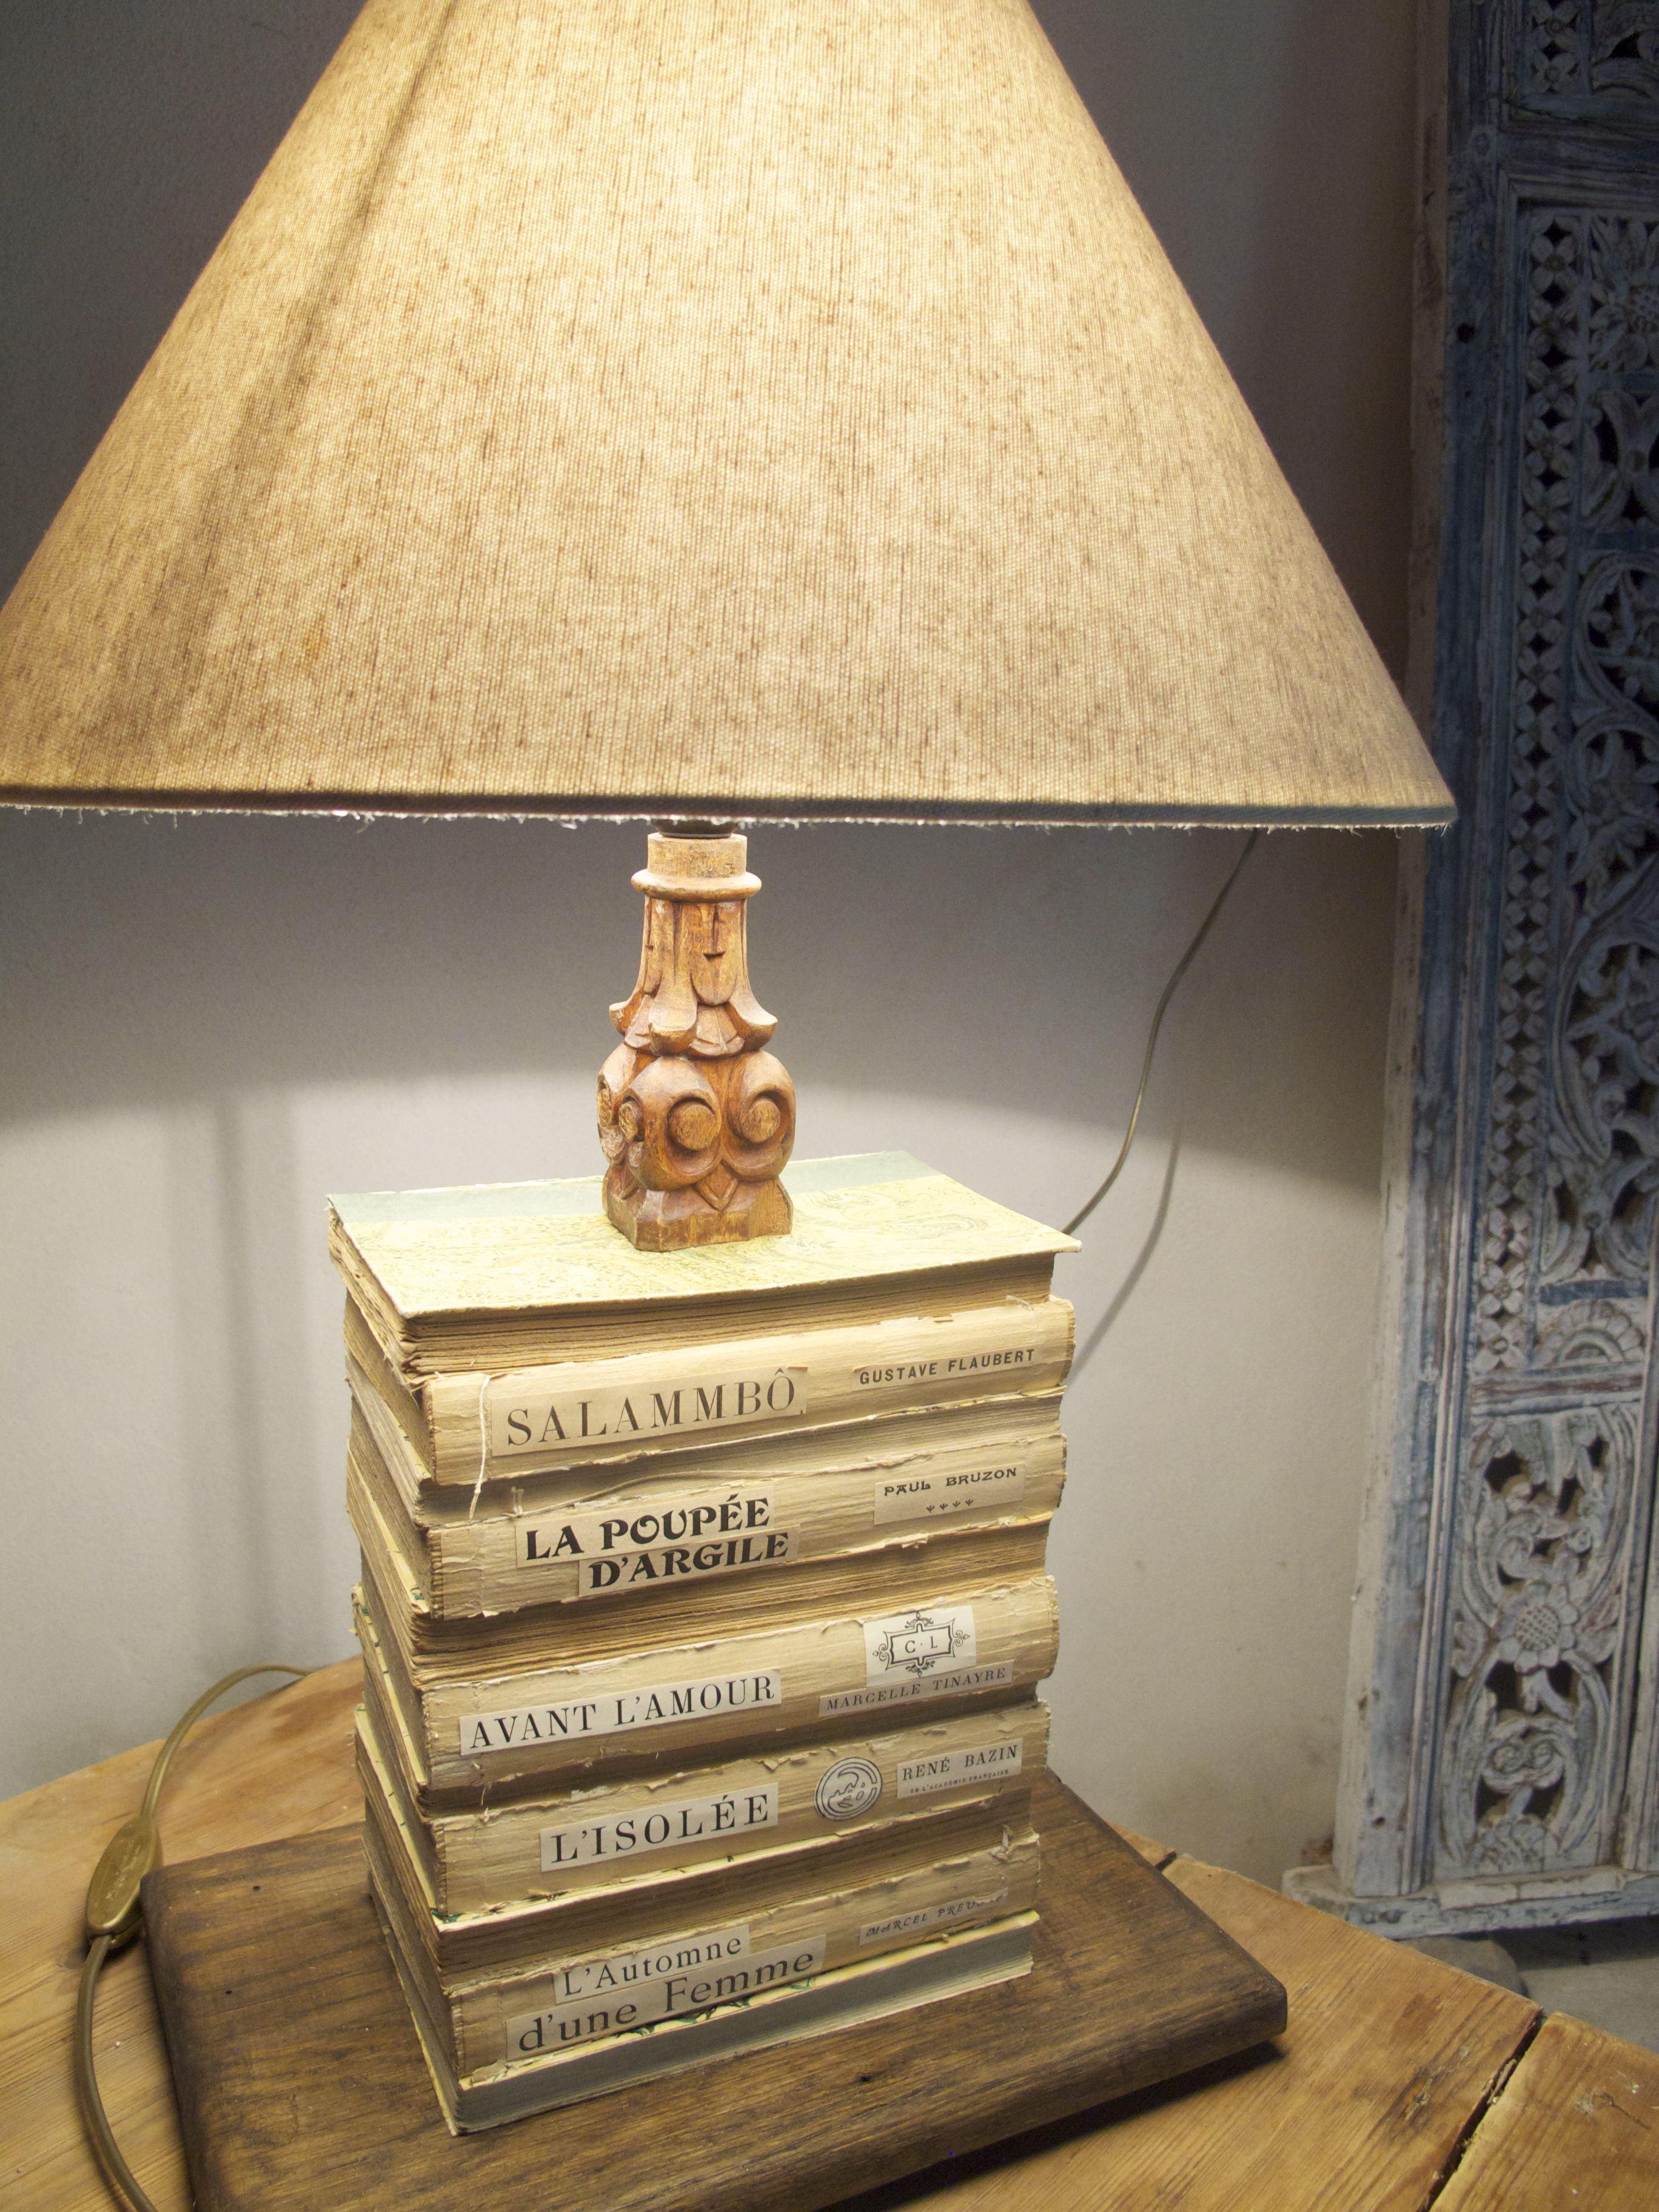 french vintage book lamps a pair of vintage upcycled table lamps